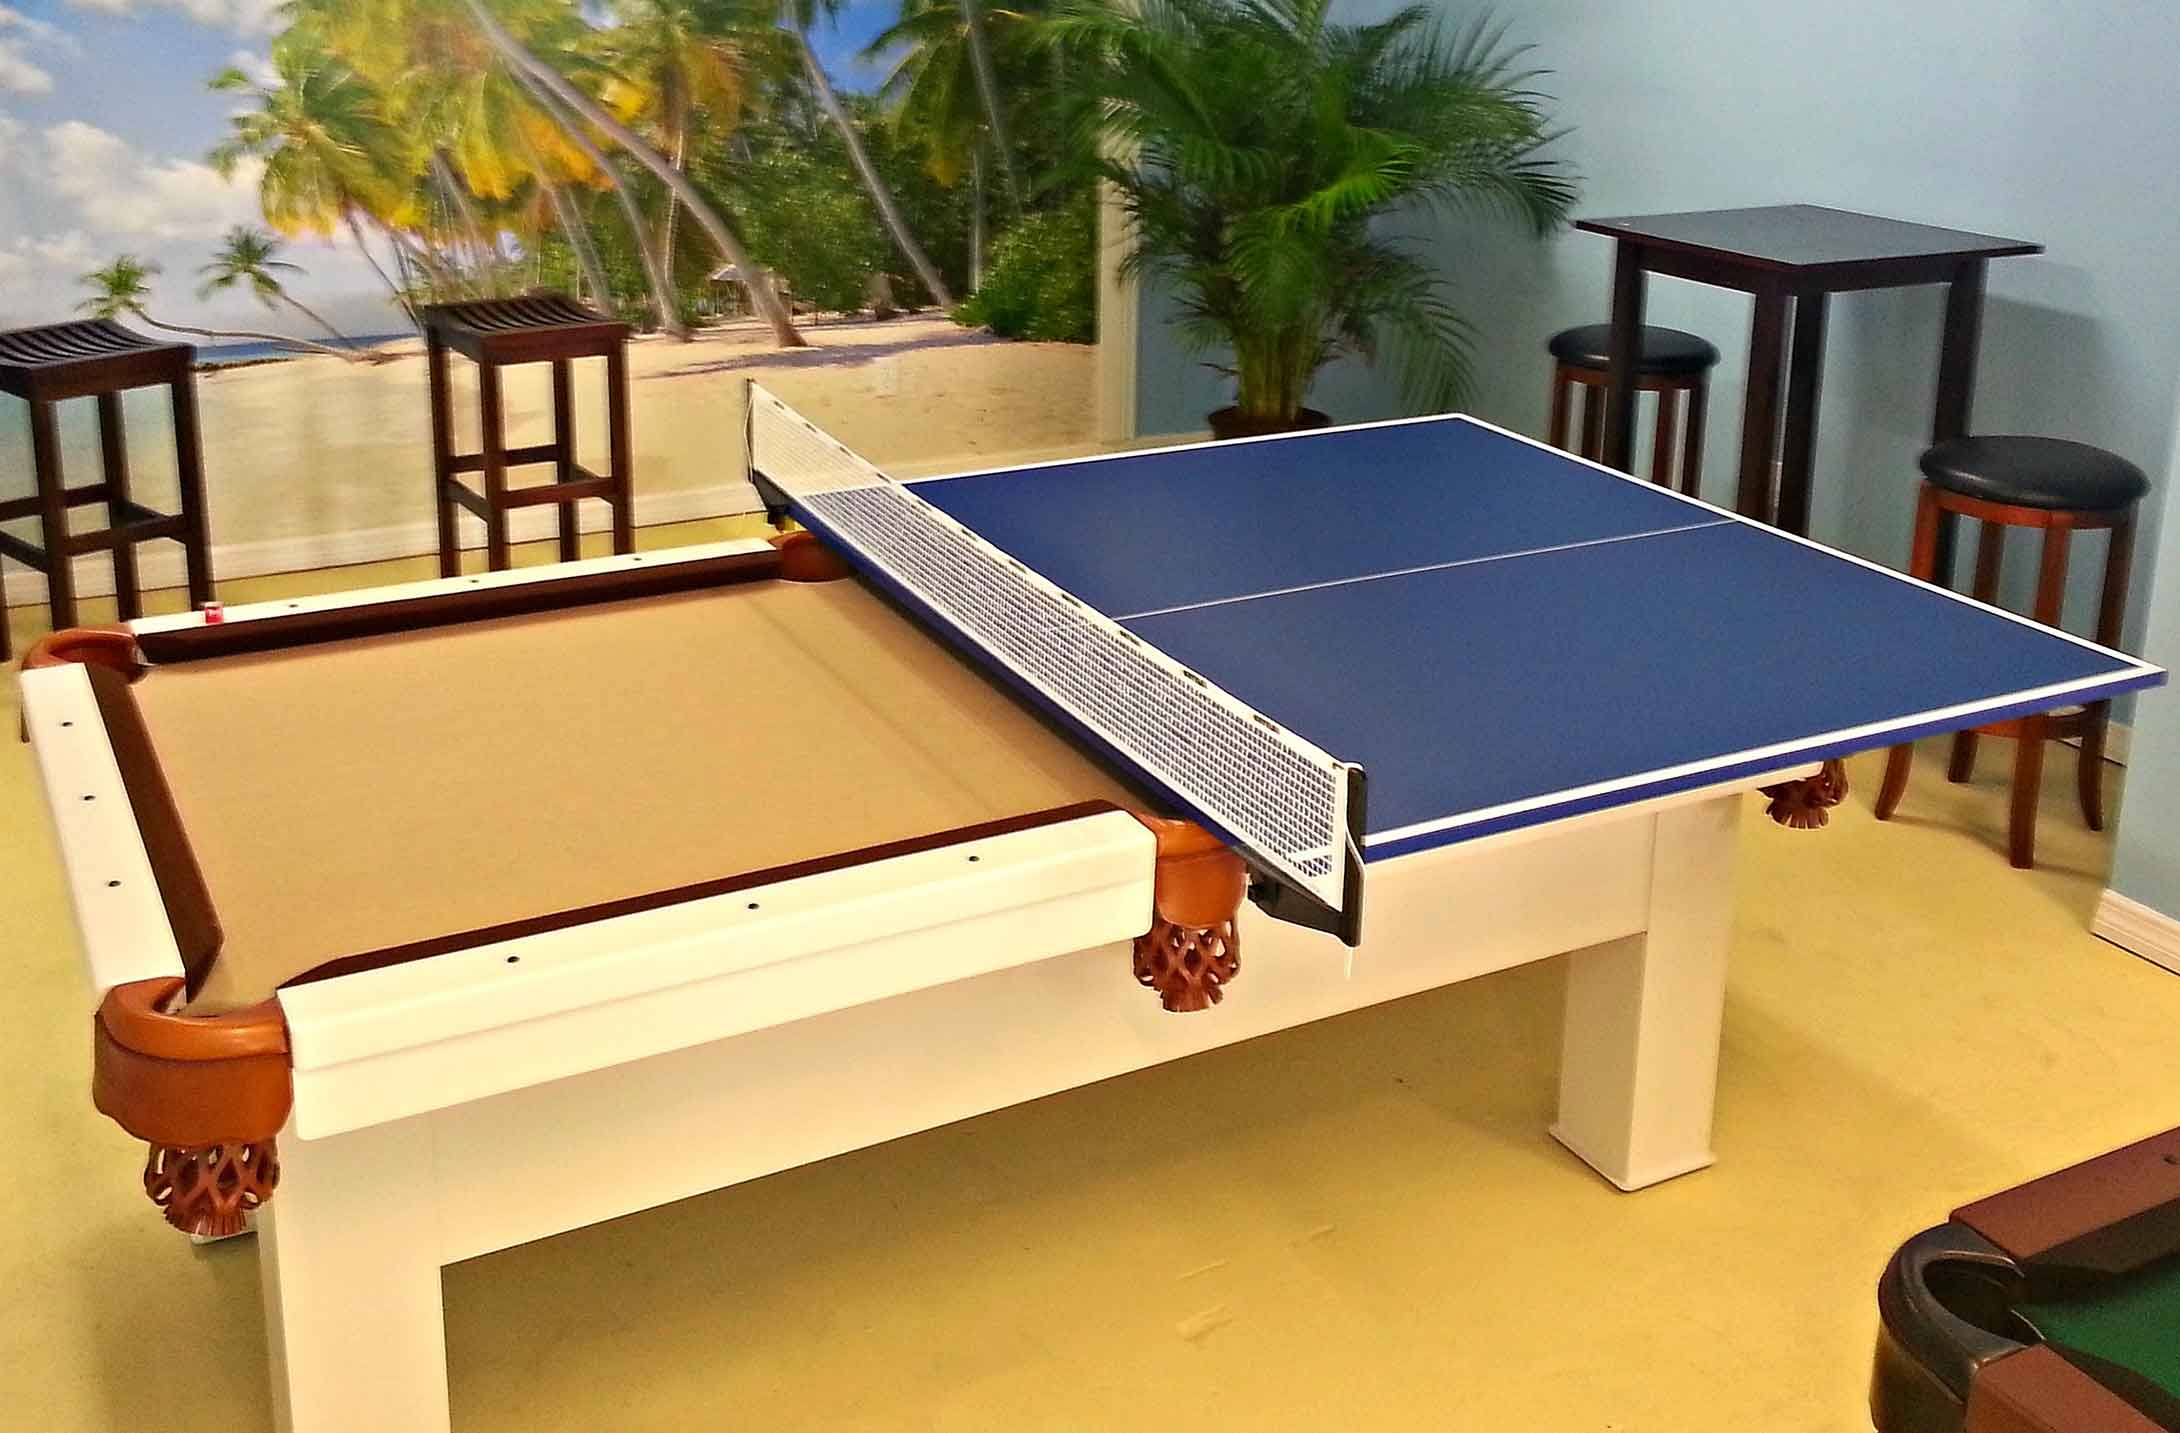 Table Tennis Conversion Top RR Outdoors Inc All Weather - Convert indoor pool table to outdoor